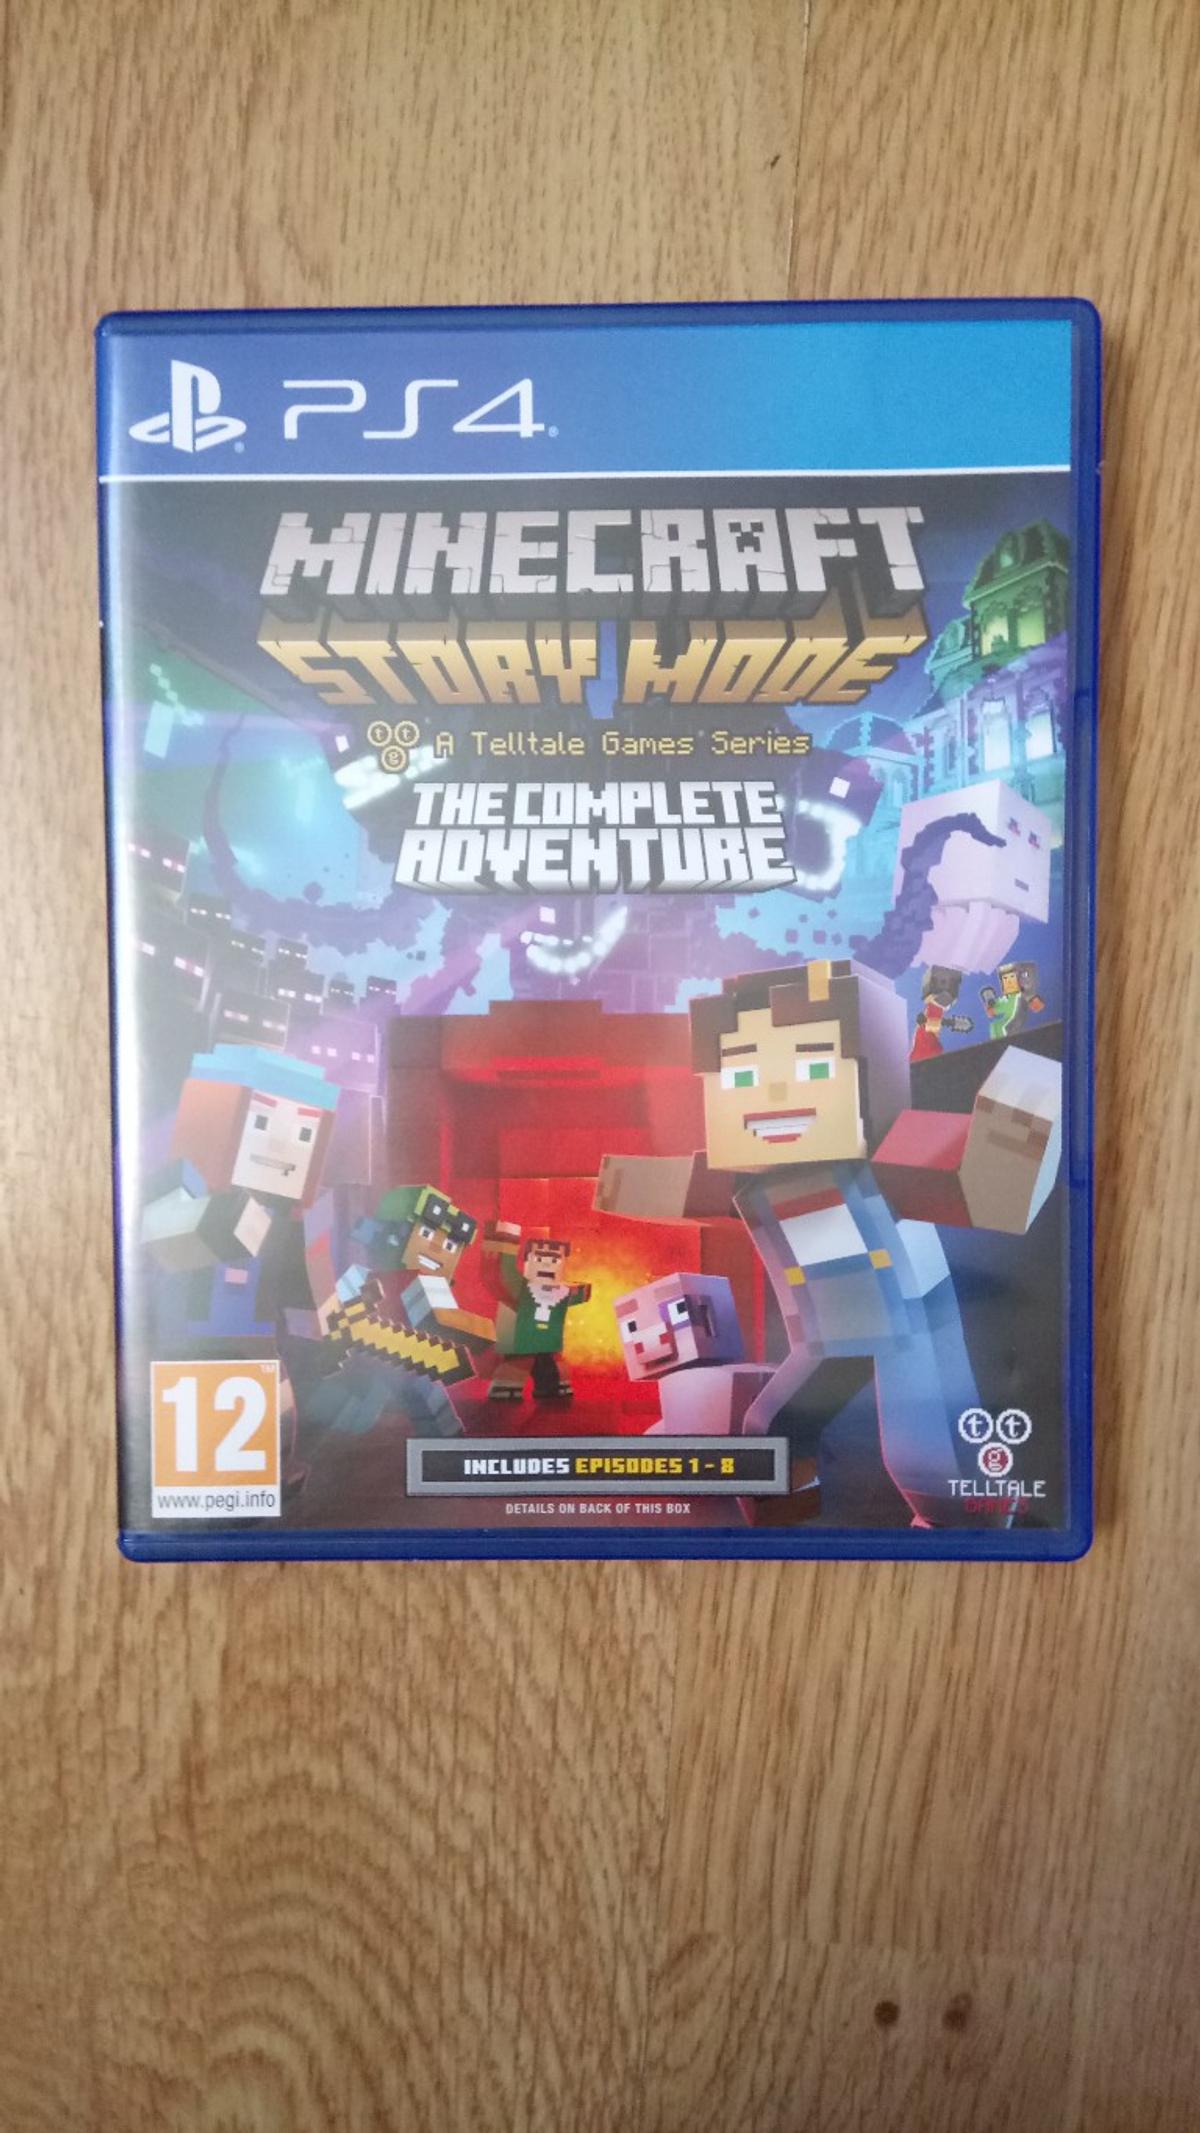 Ps4 Minecraft story mode, the complete advent